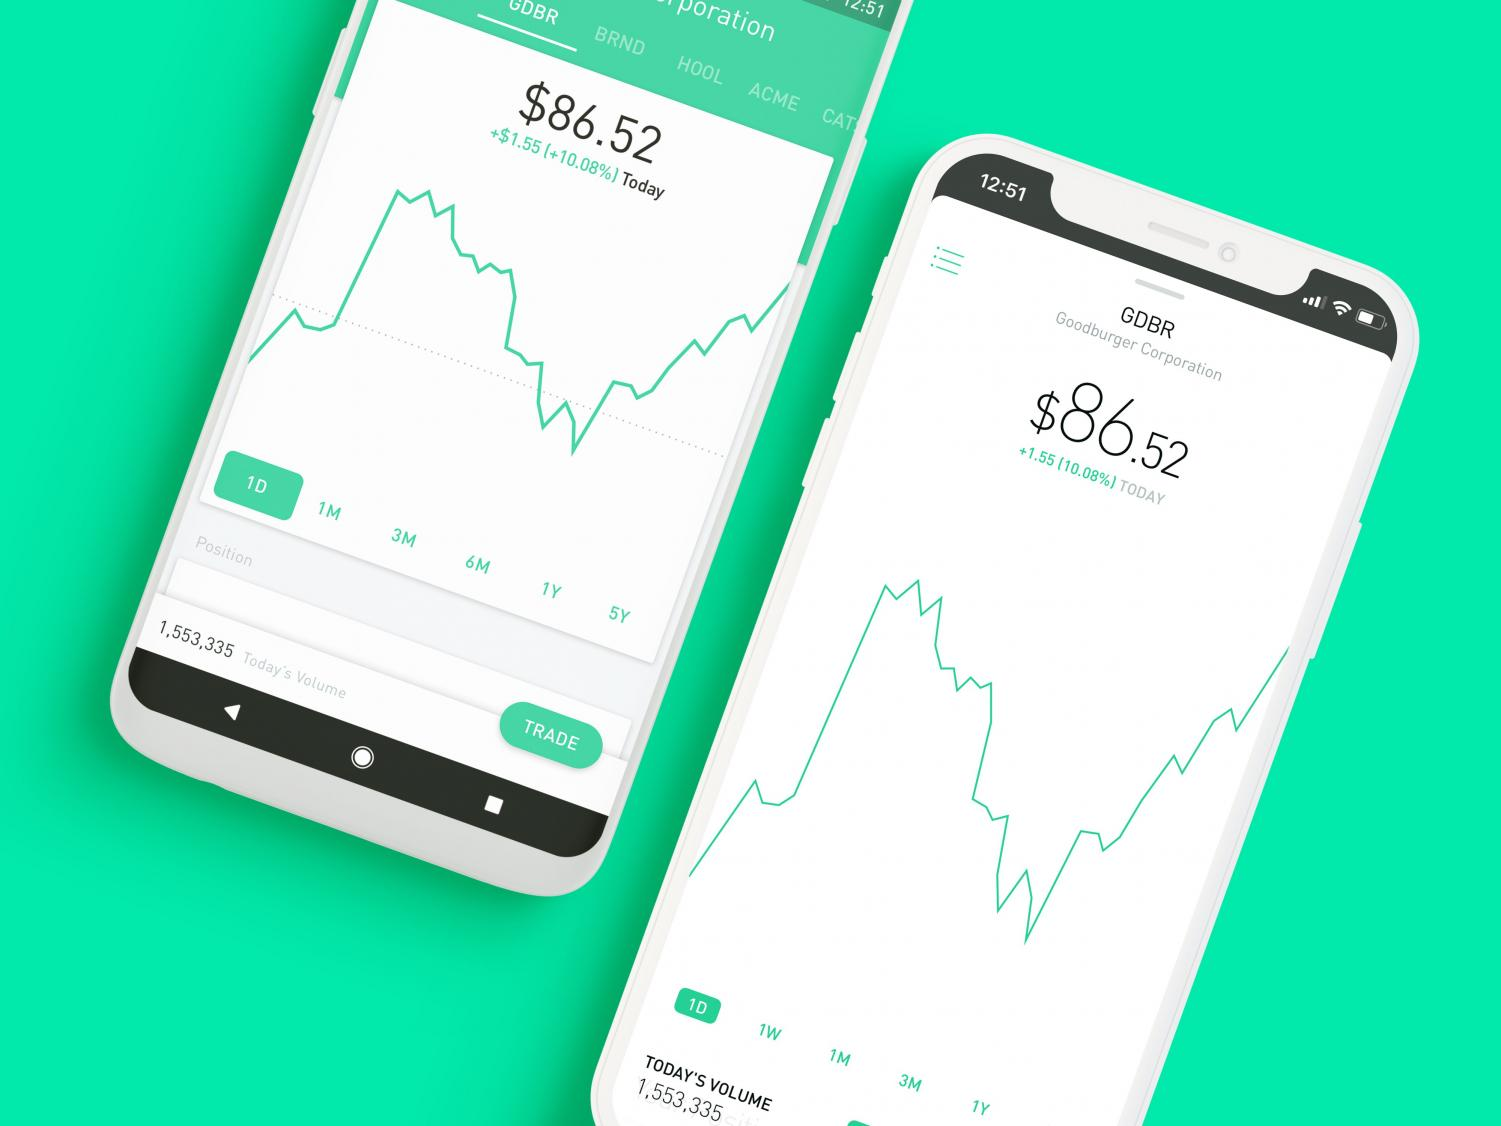 Robinhood is a downloadable mobile app that allows users to trade stocks with no fee.